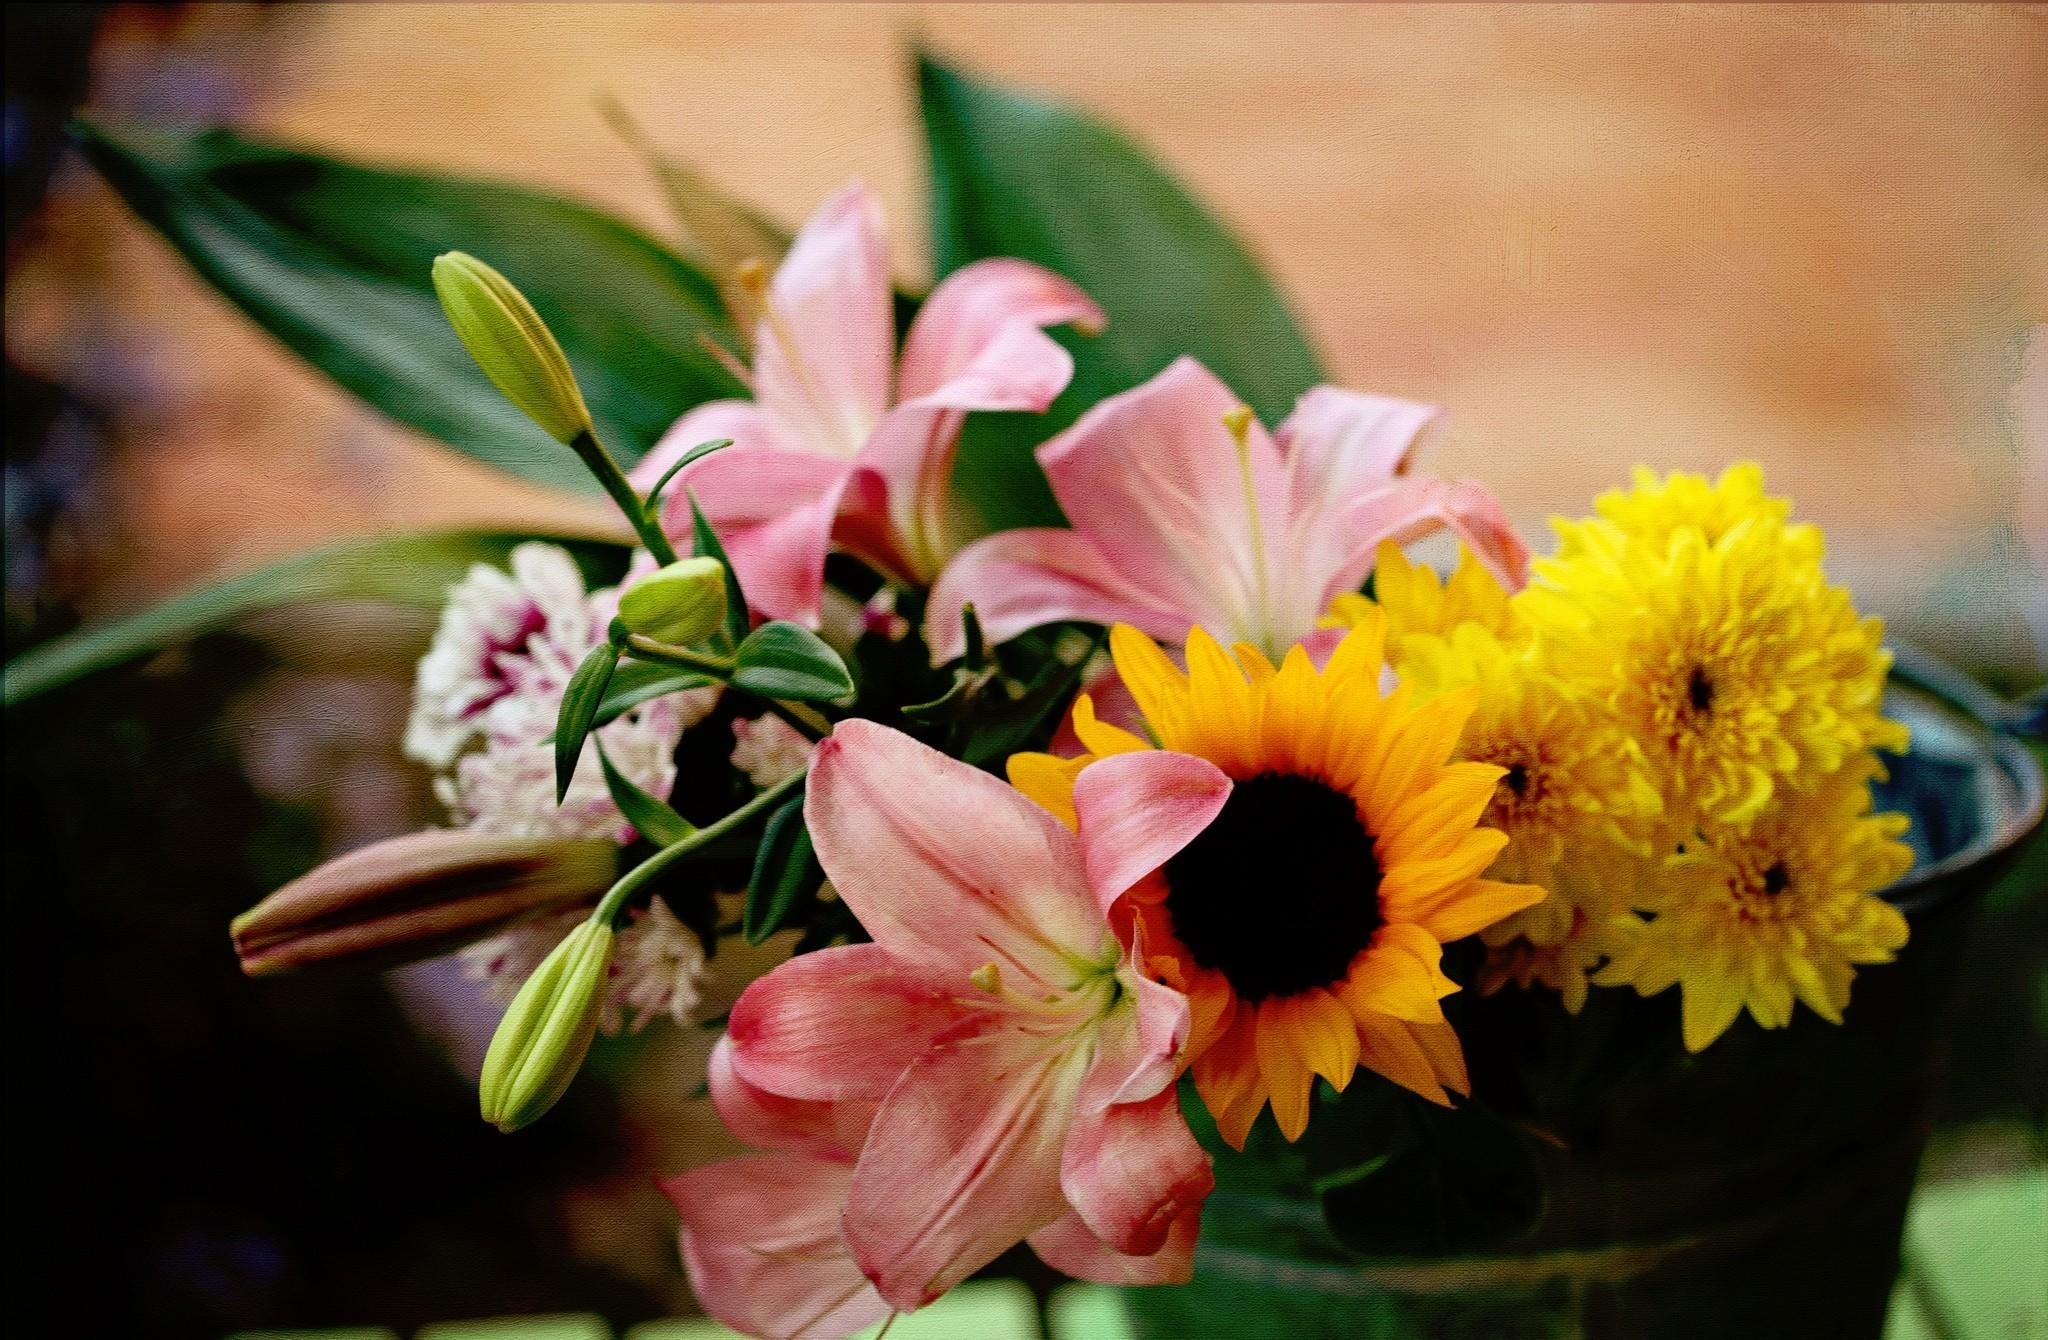 87752 download wallpaper Flowers, Chrysanthemum, Lilies, Bouquet, Sunflower, Bucket screensavers and pictures for free